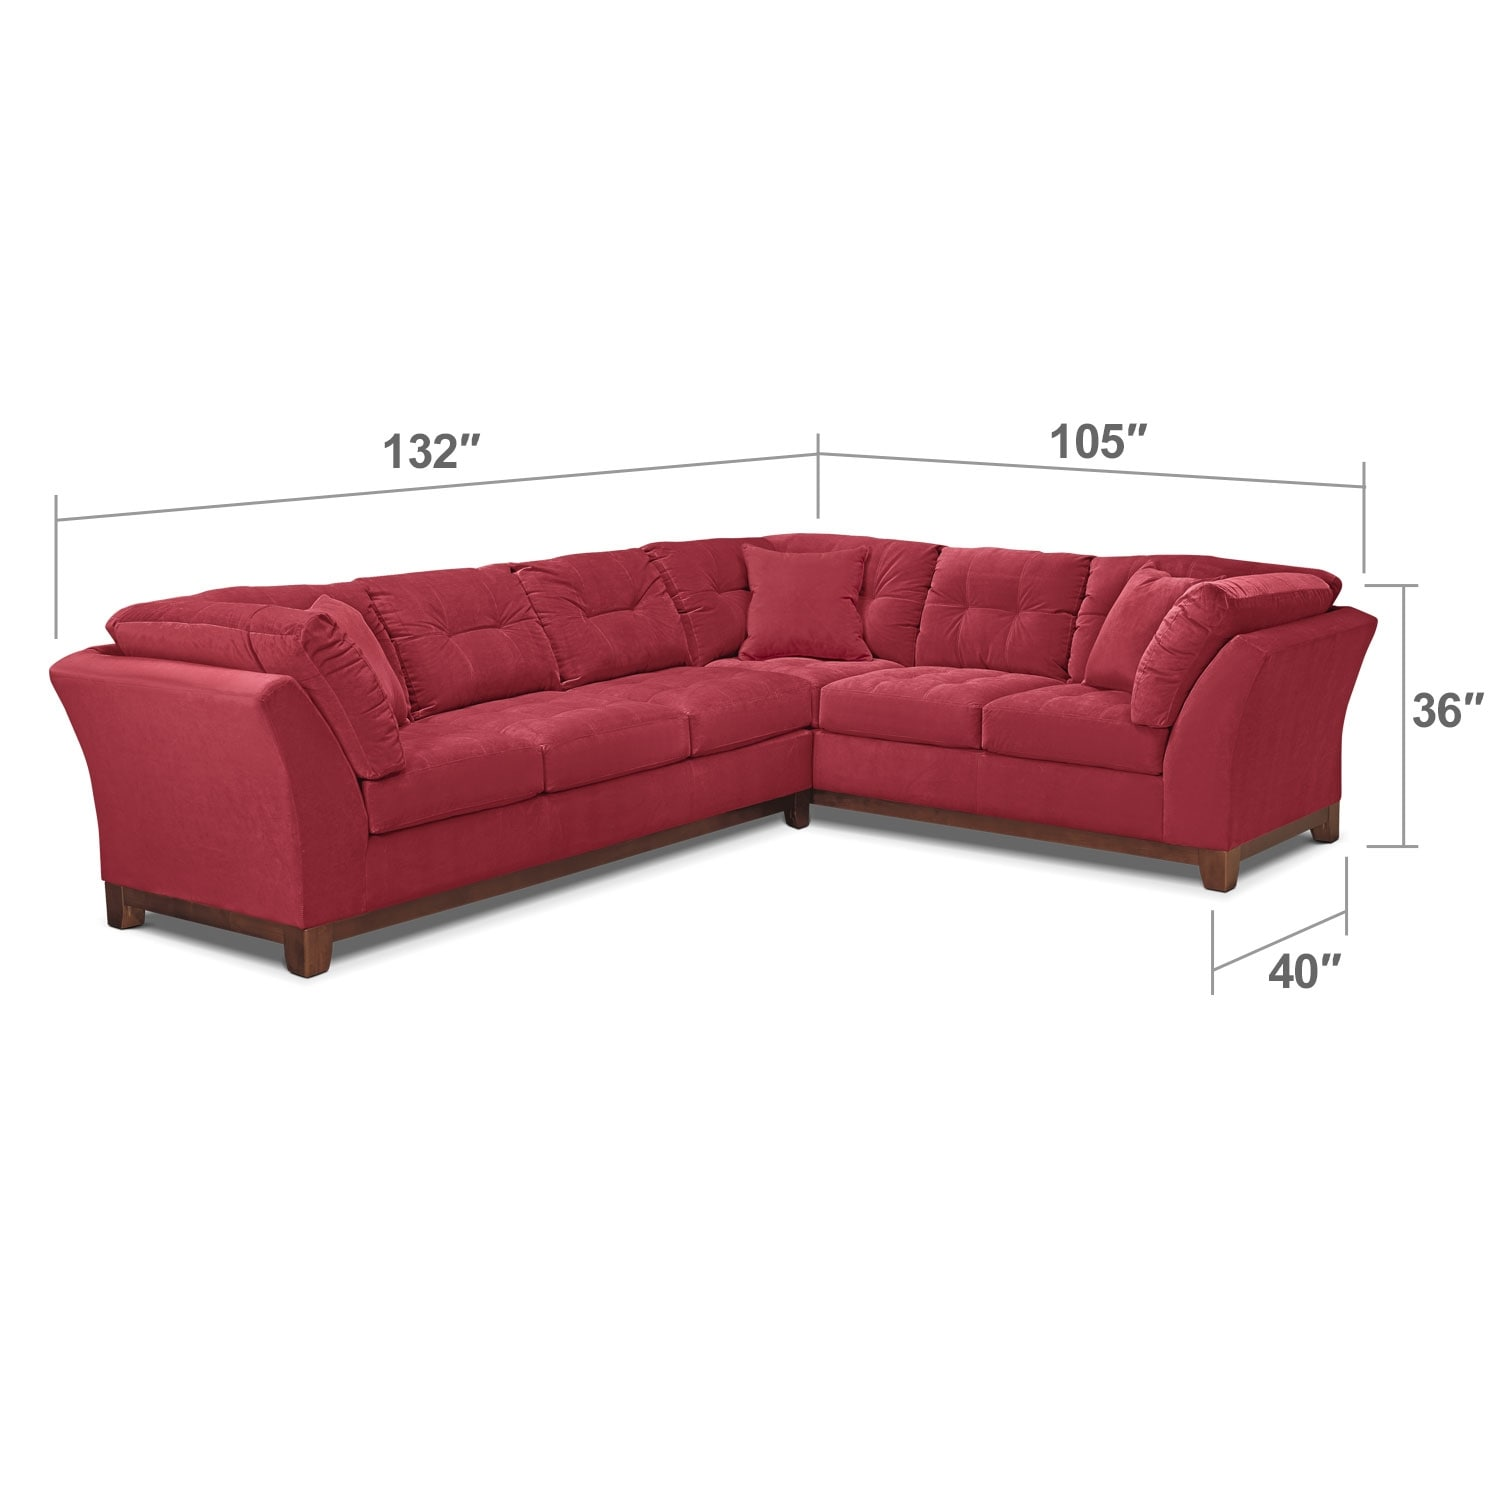 Living Room Furniture - Solace Poppy II 2 Pc. Sectional (Reverse)